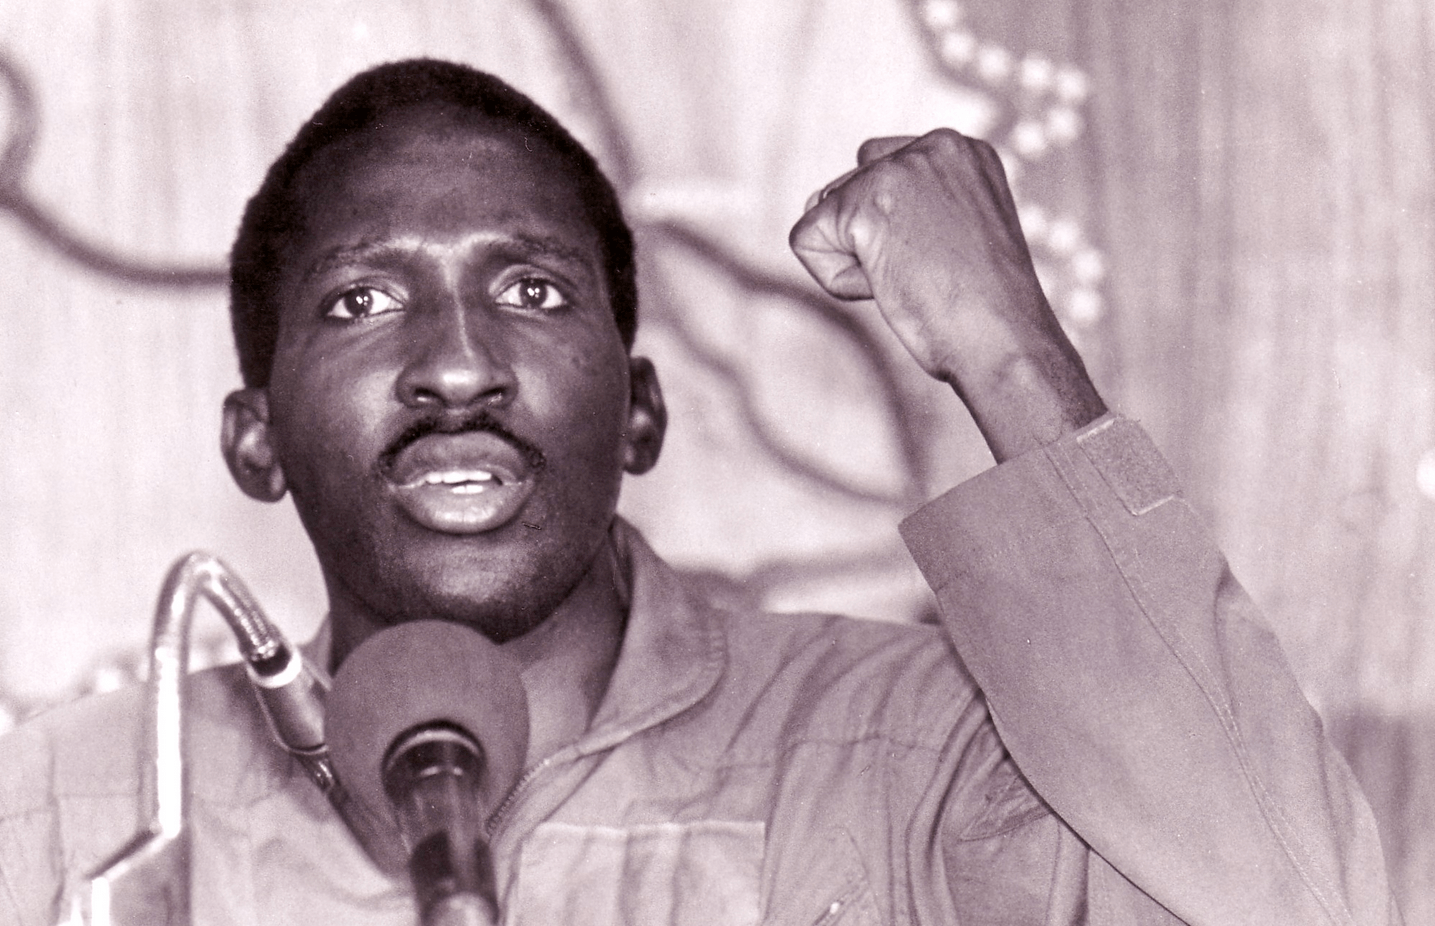 Capitaine Thomas Sankara : portrait d'un révolutionnaire